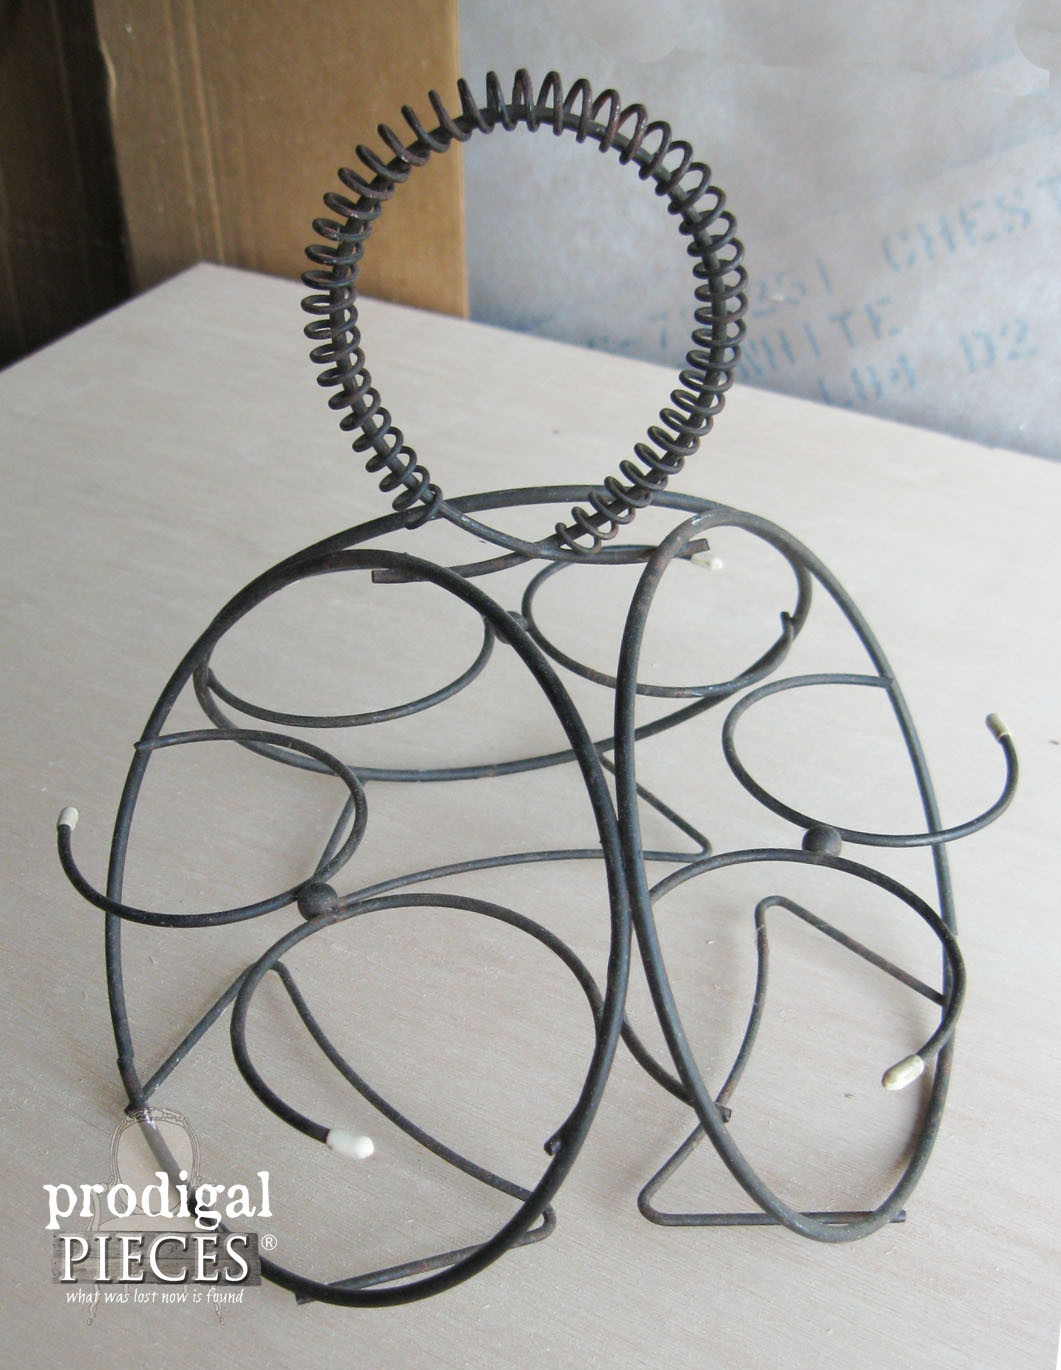 Wire Holder Finds New Purpose with the Help of Prodigal Pieces | www.prodigalpieces.com